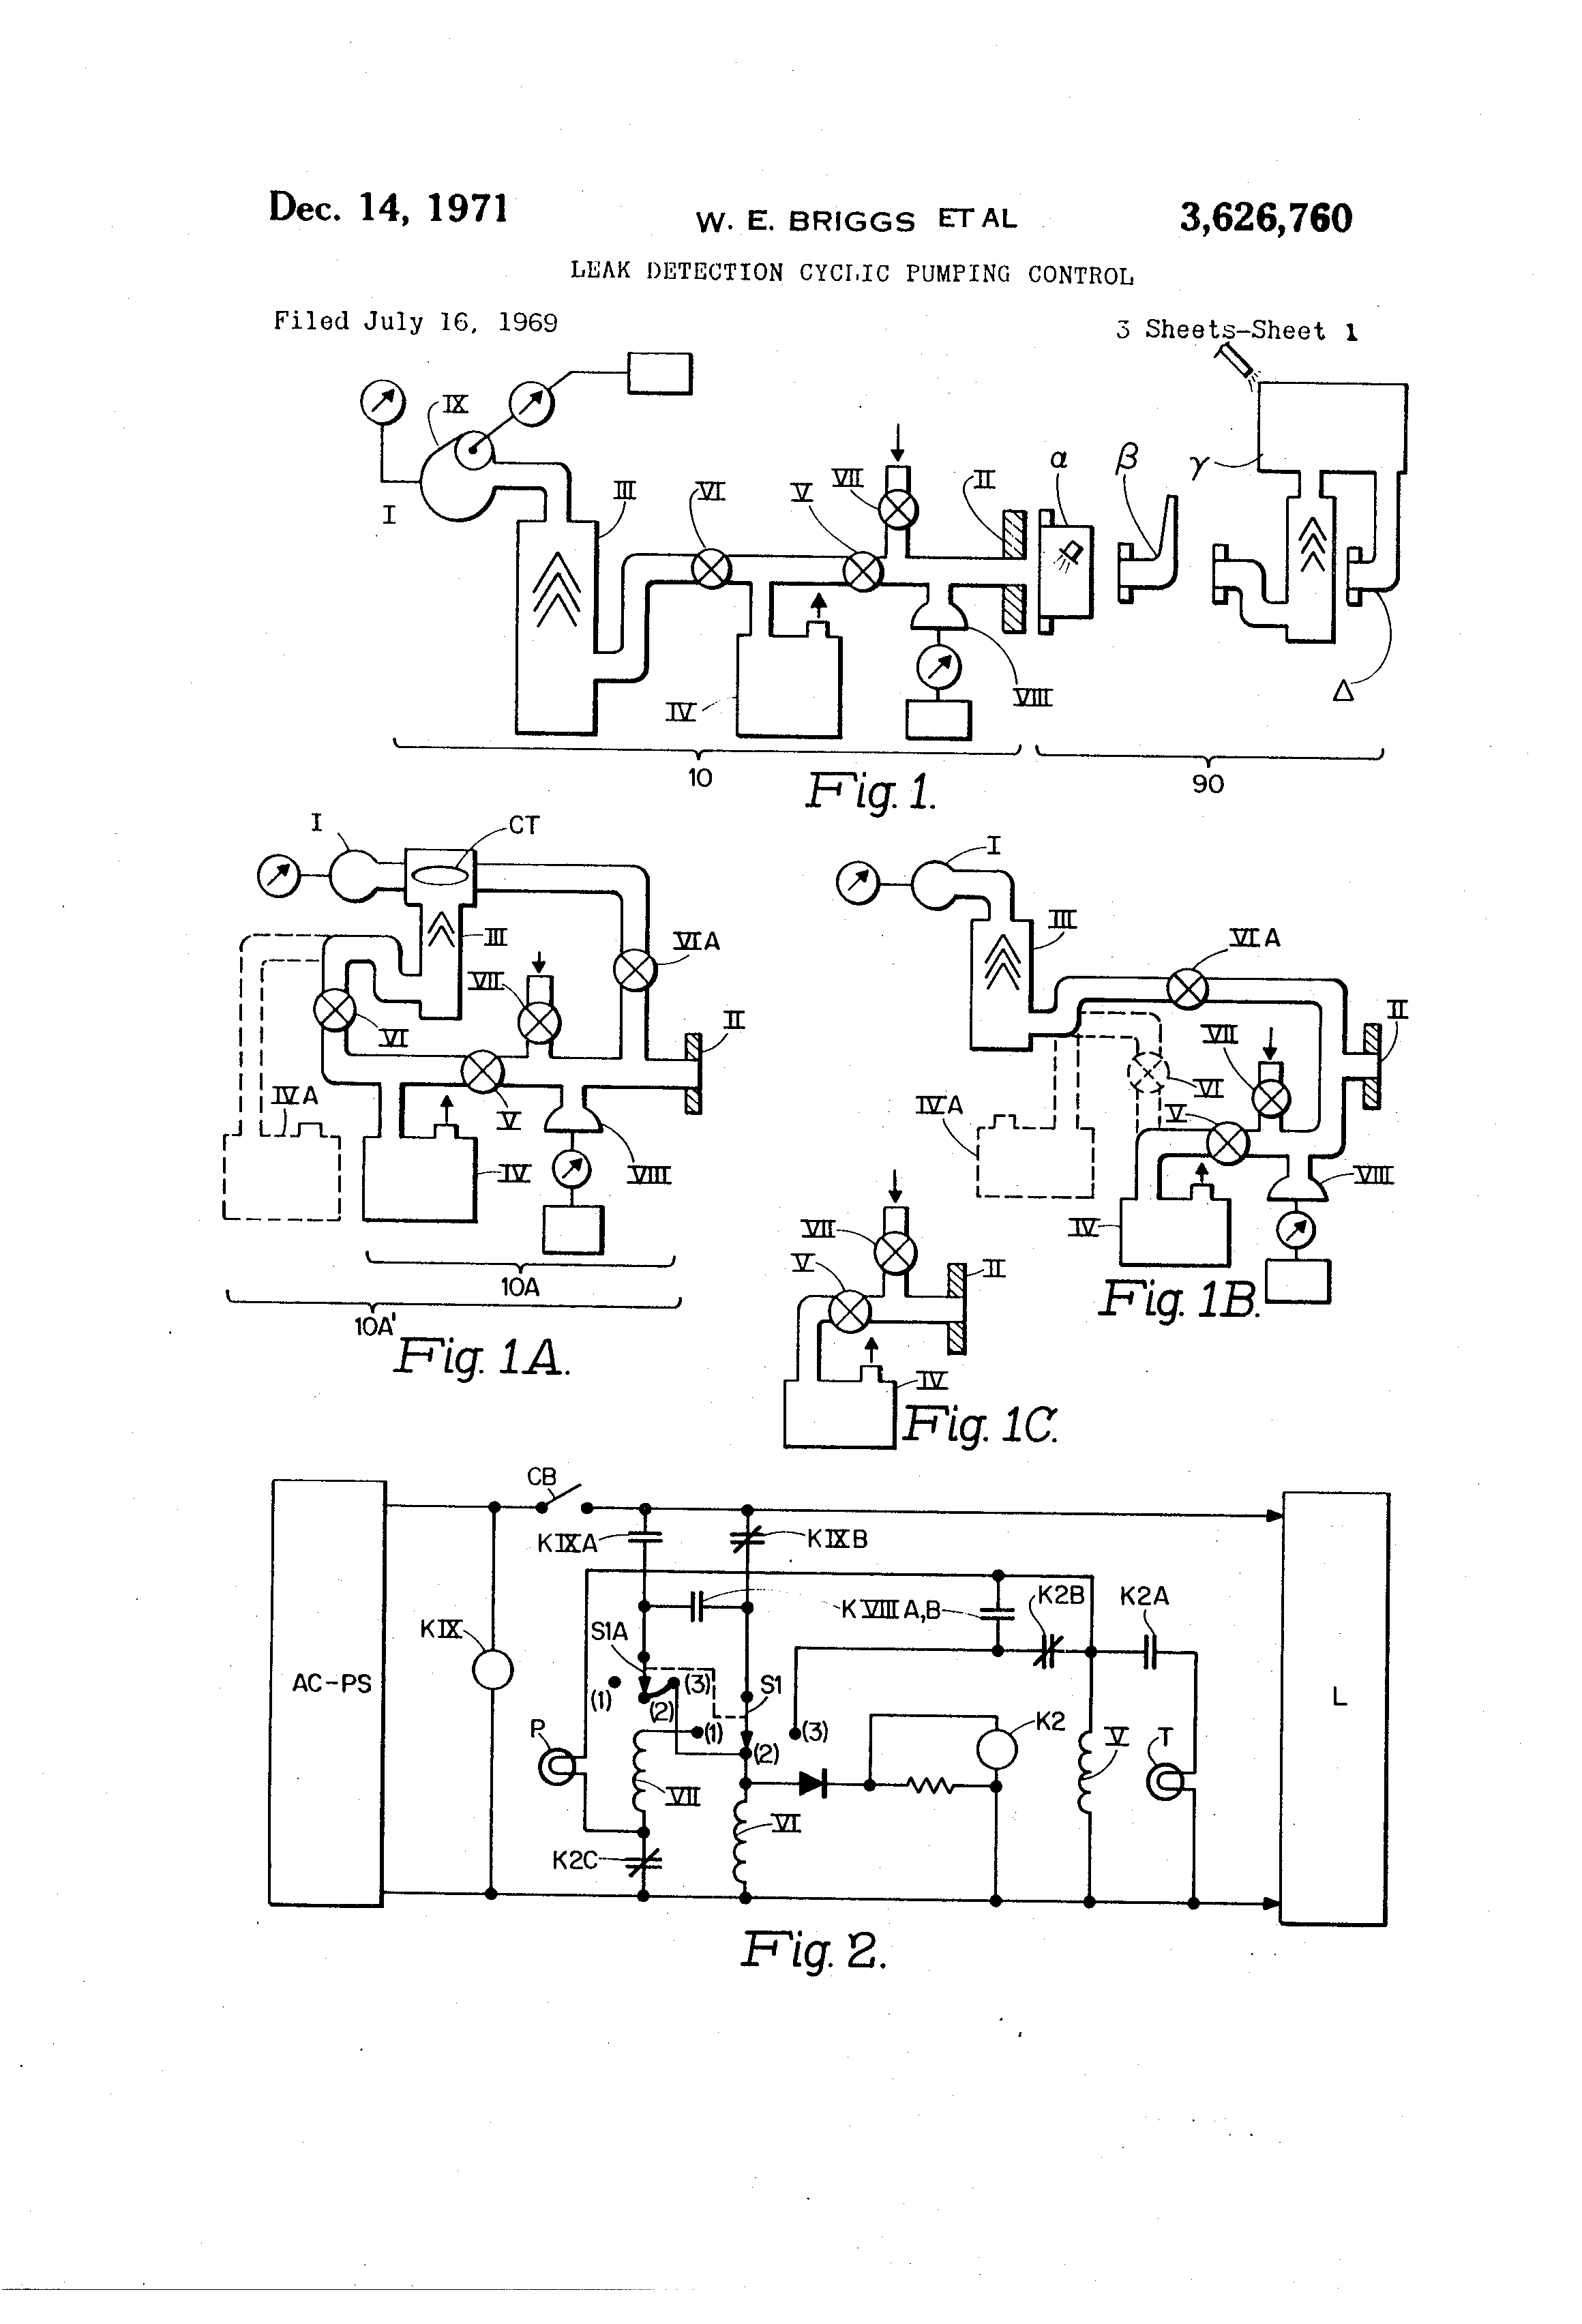 Patent Us3626760 Leak Detection Cyclic Pumping Control Google Relay Wiring Diagram Drawing